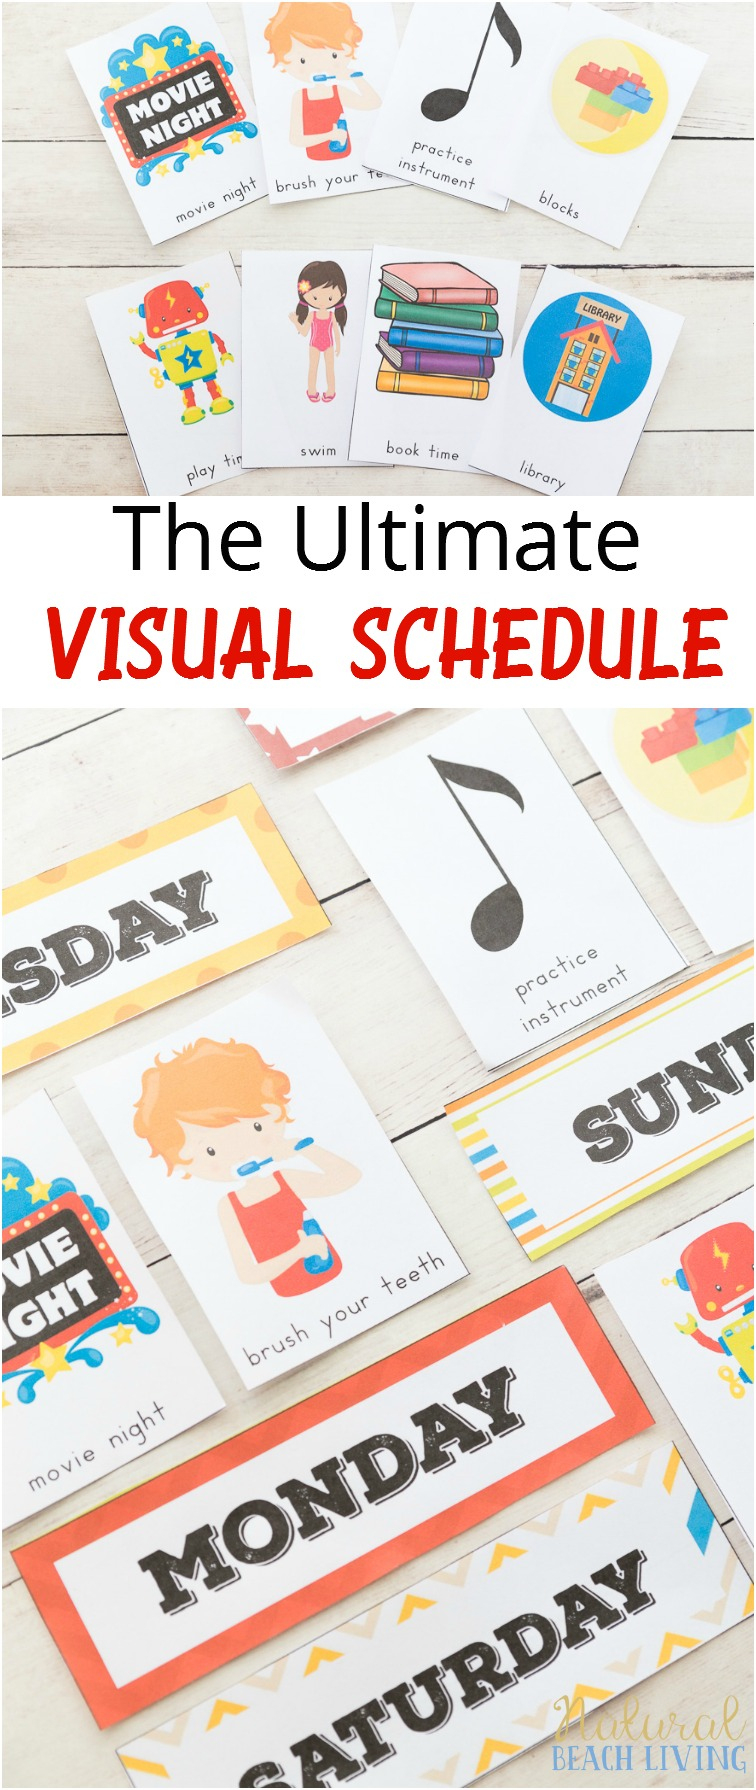 Daily Visual Schedule For Kids Free Printable - Natural Beach Living - Free Printable Visual Schedule For Preschool